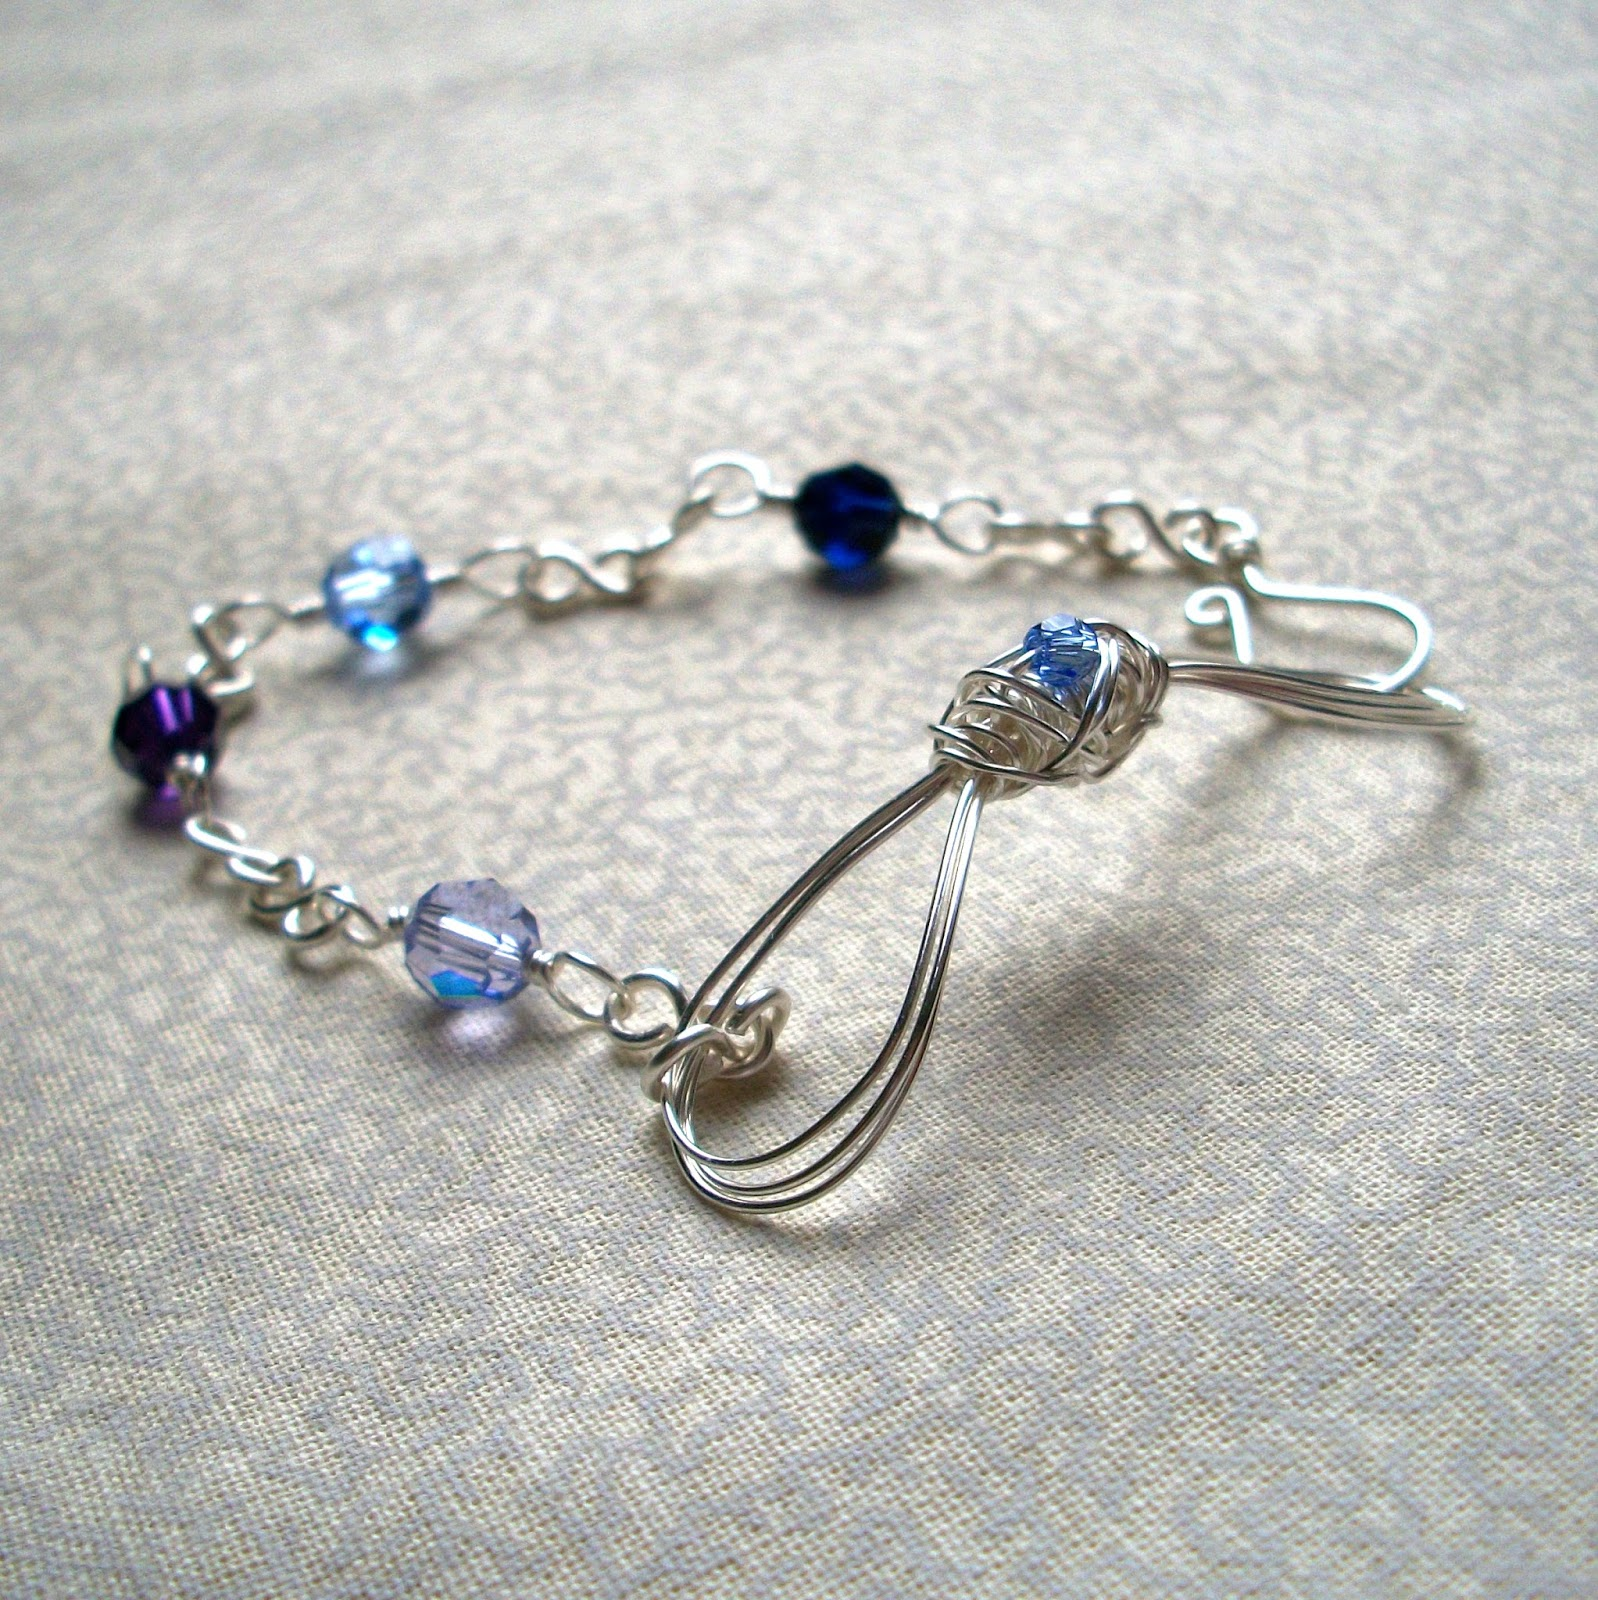 Blue Swarvoski Crystal Bow Bracelet - Best Sellers